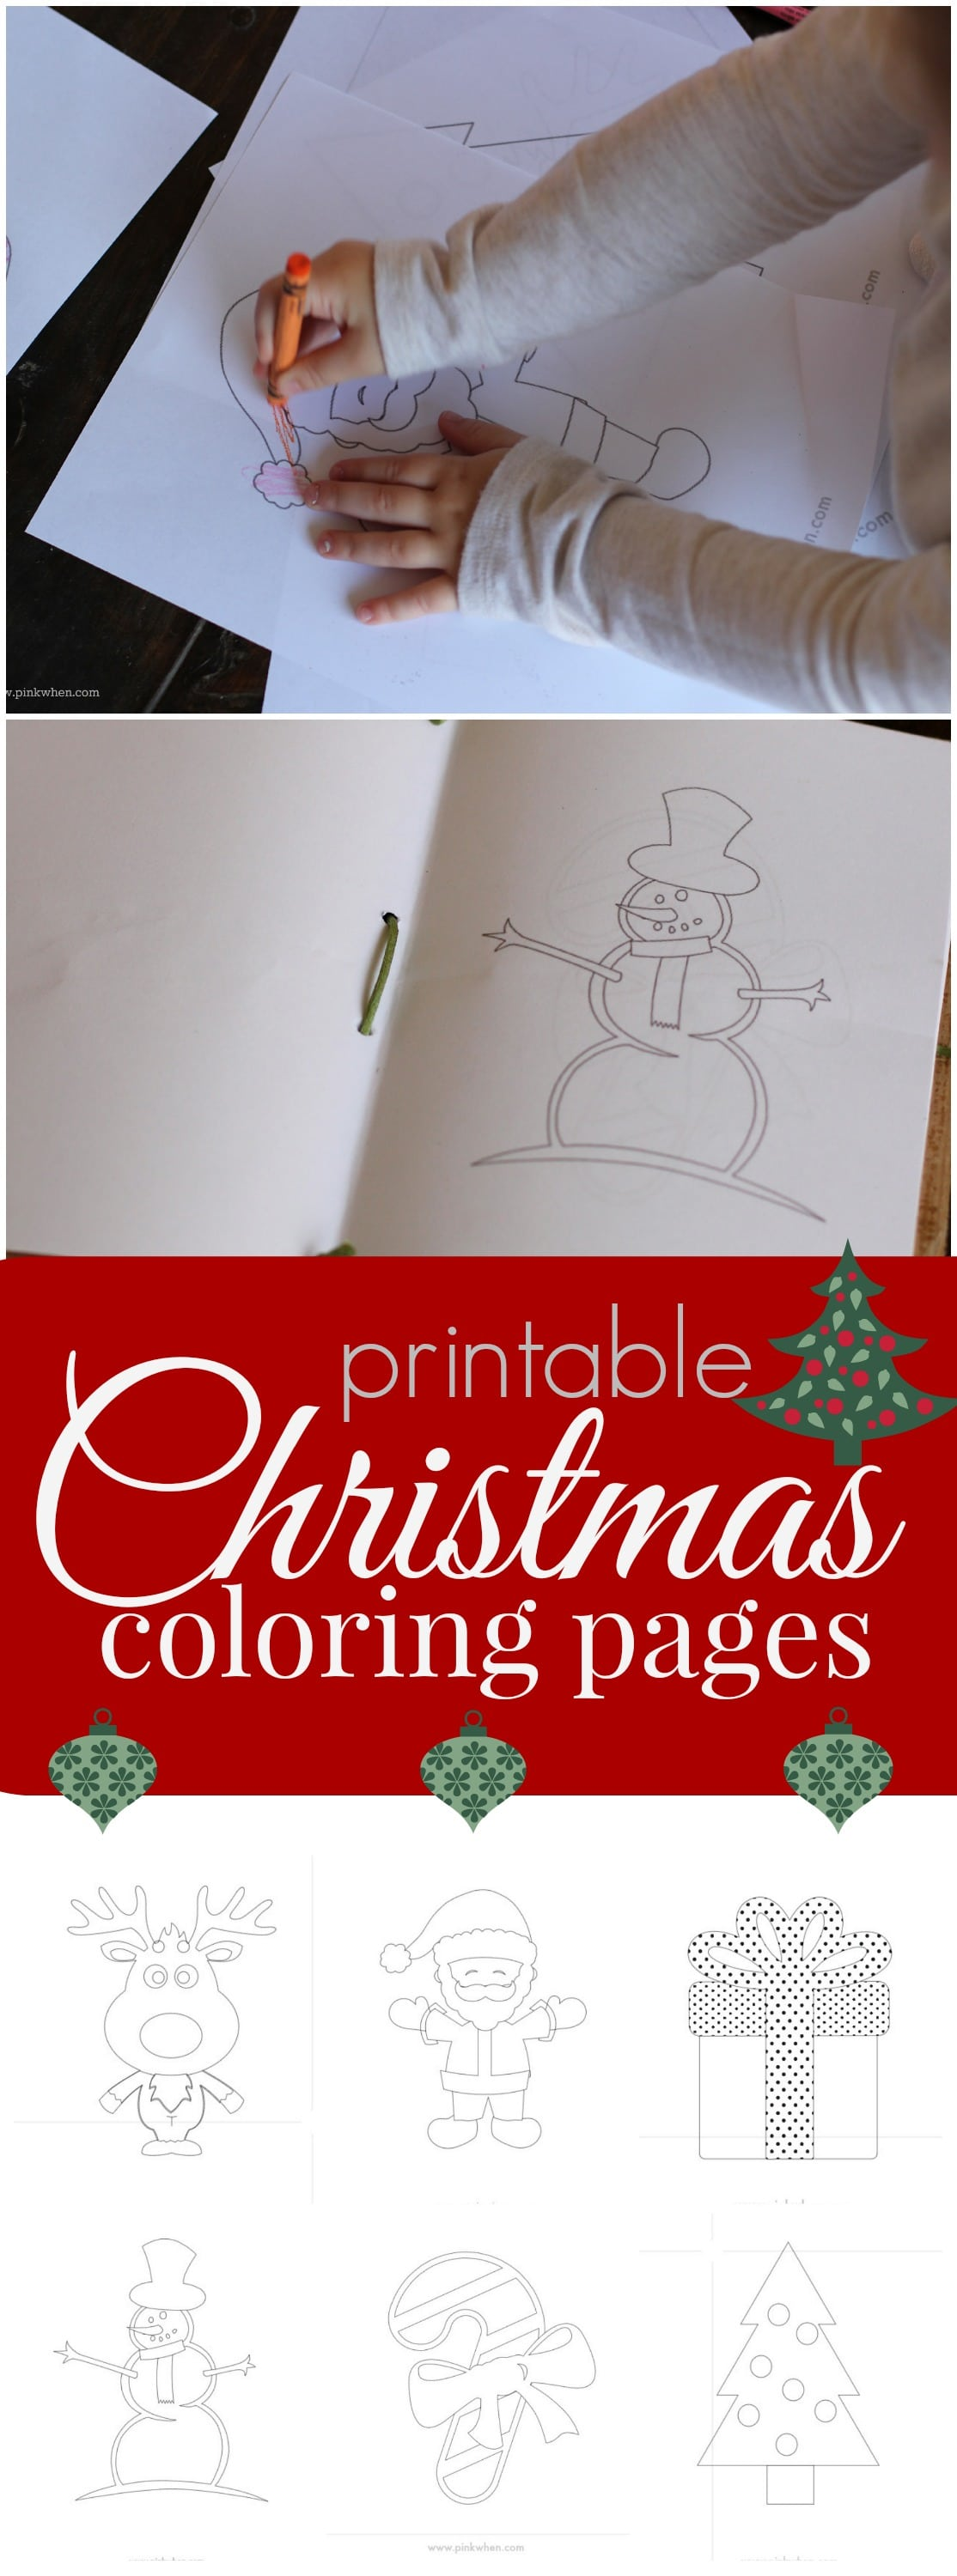 Printable Christmas Coloring Pages - PinkWhen